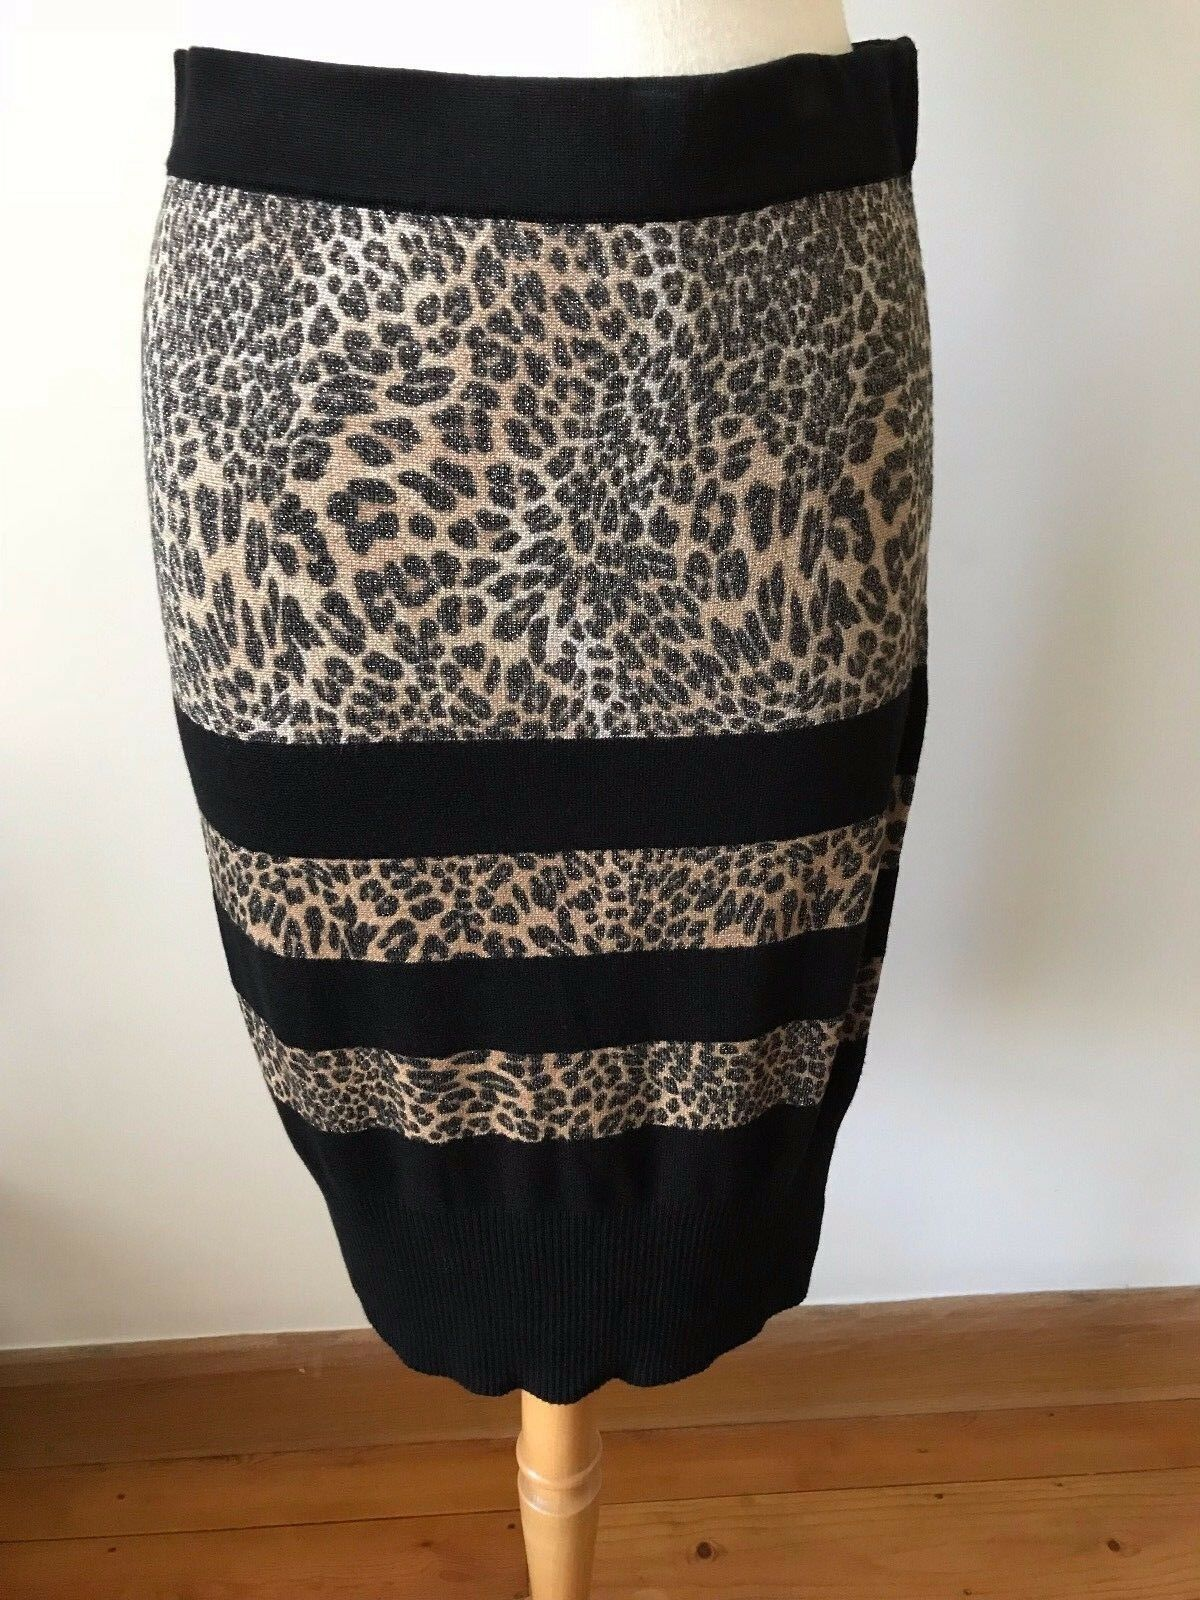 Passioni leopard print knitted skirt, size 12-14